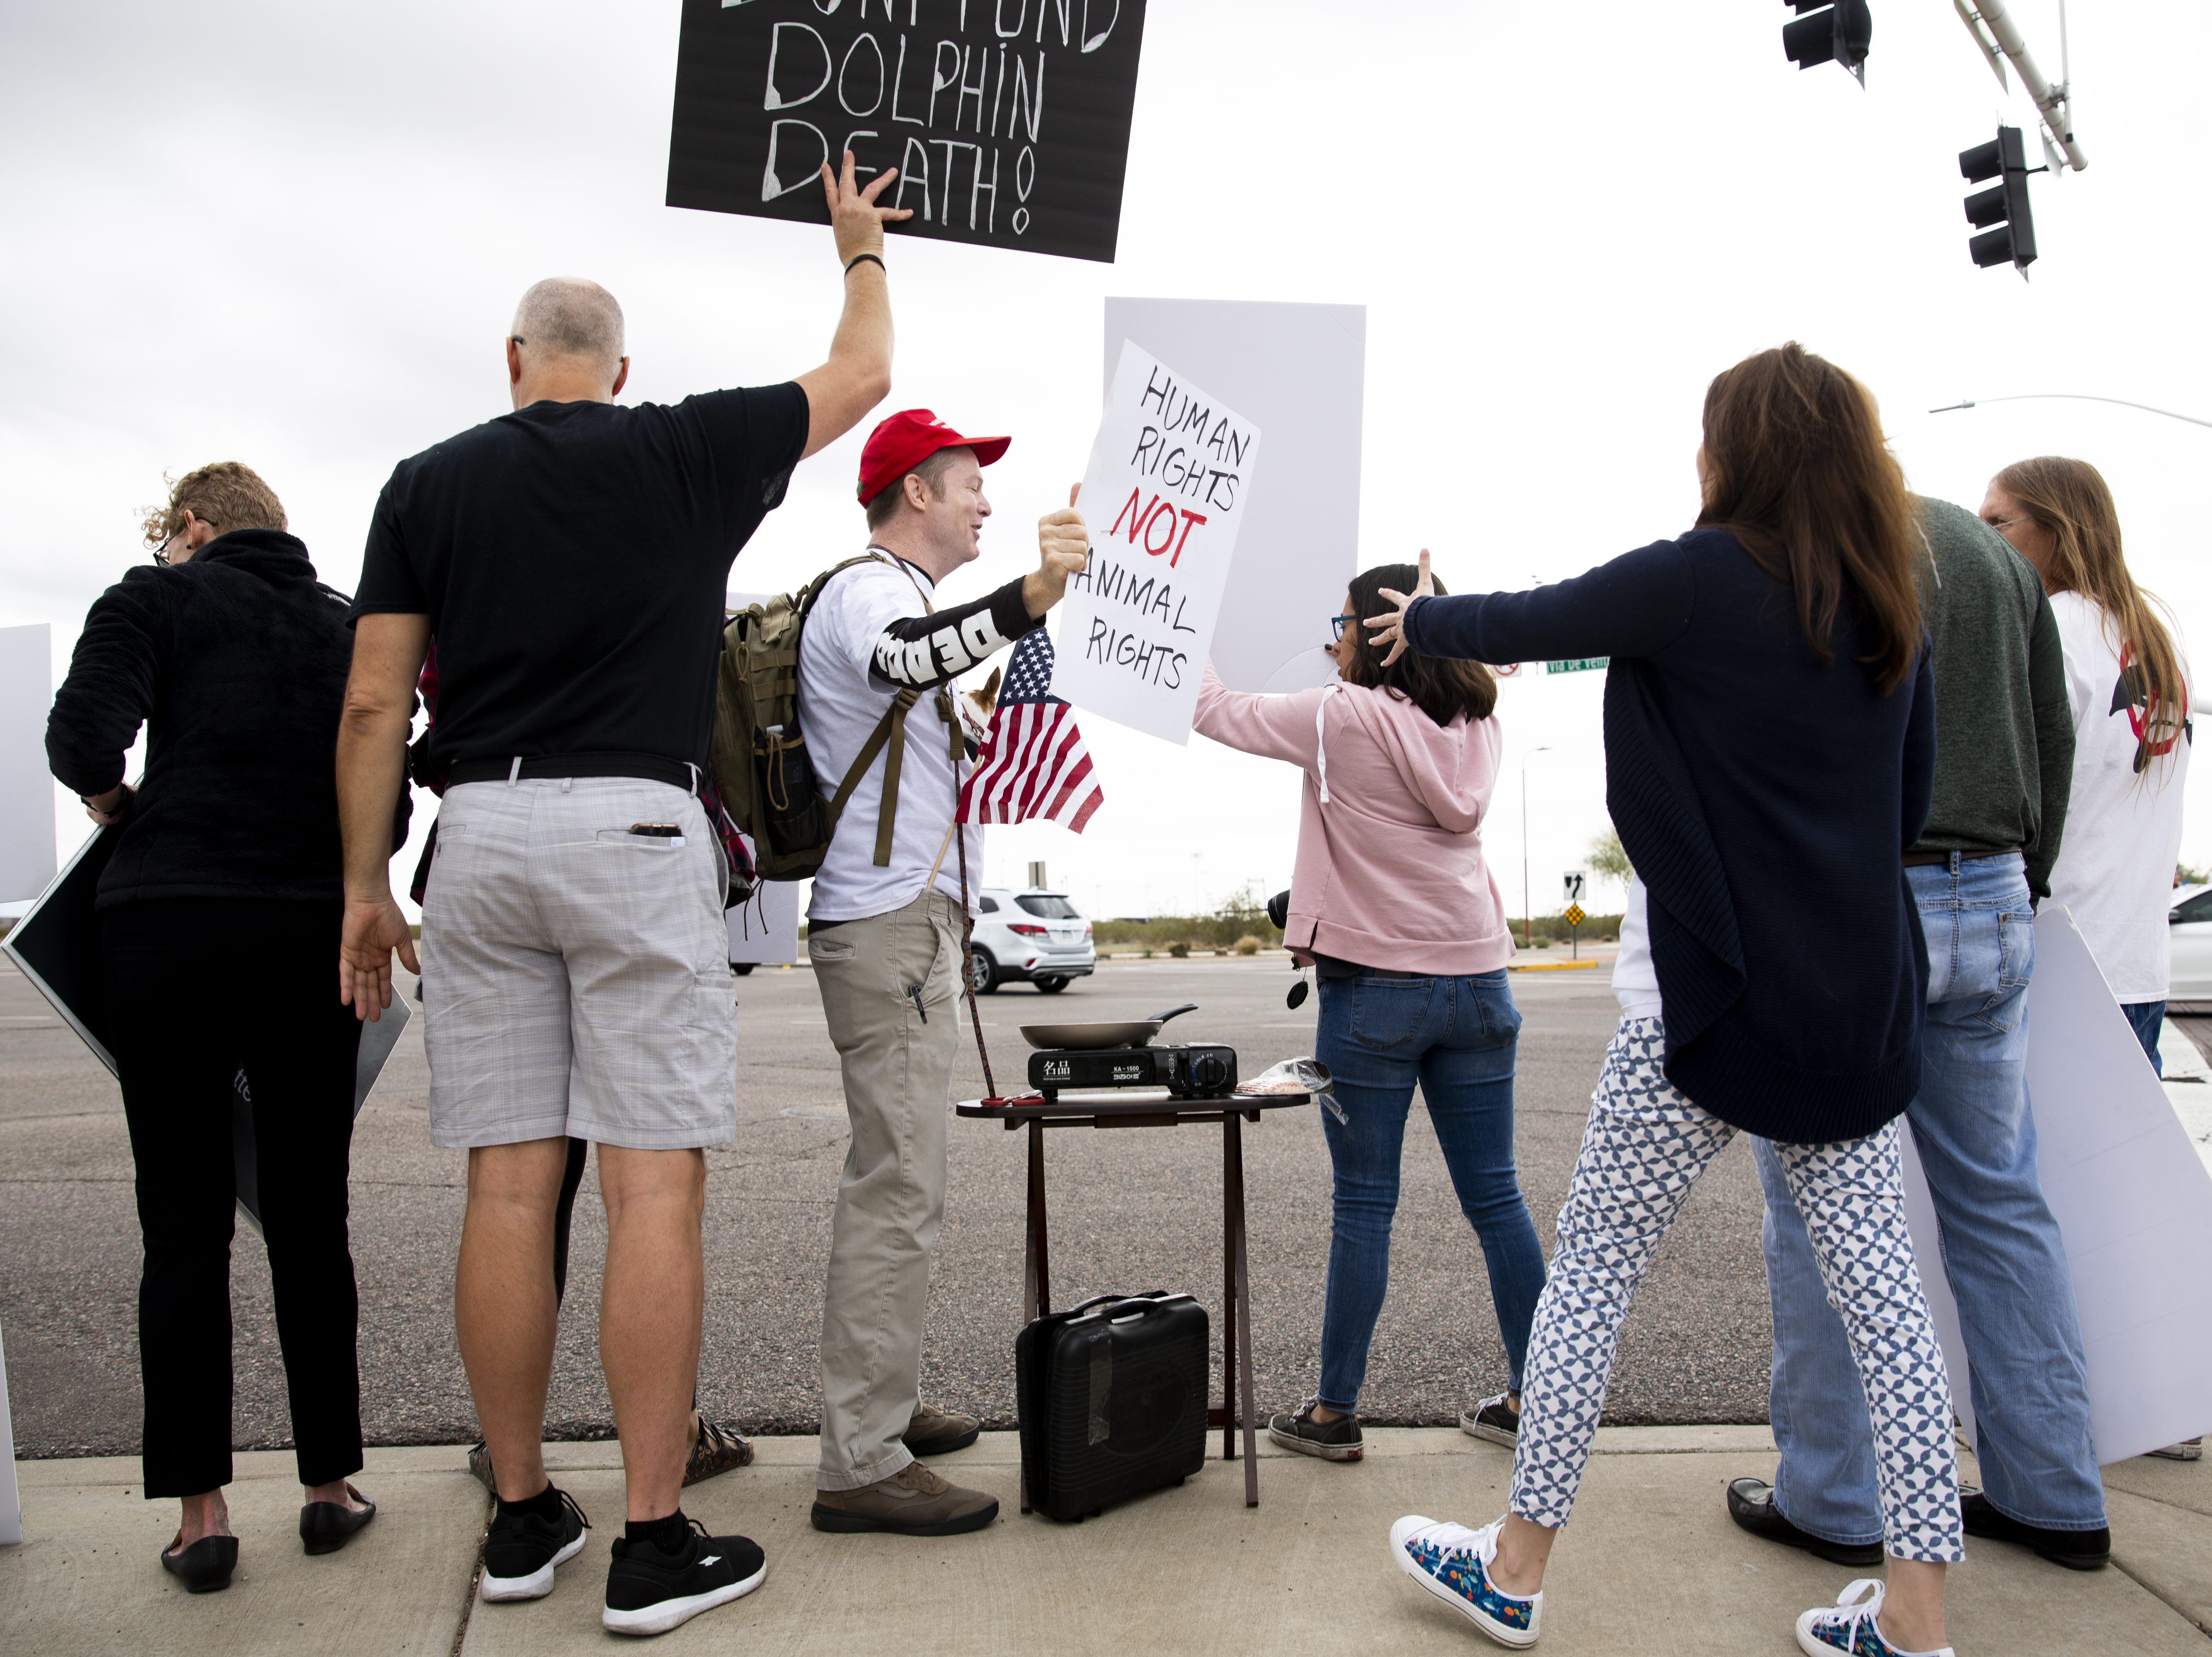 People at the protest against Dolphinaris attempt to block the view of a counter-protester (in red hat) at the intersection of E. Via de Ventura and N. Pima Road. There were two counter-protesters at the event.